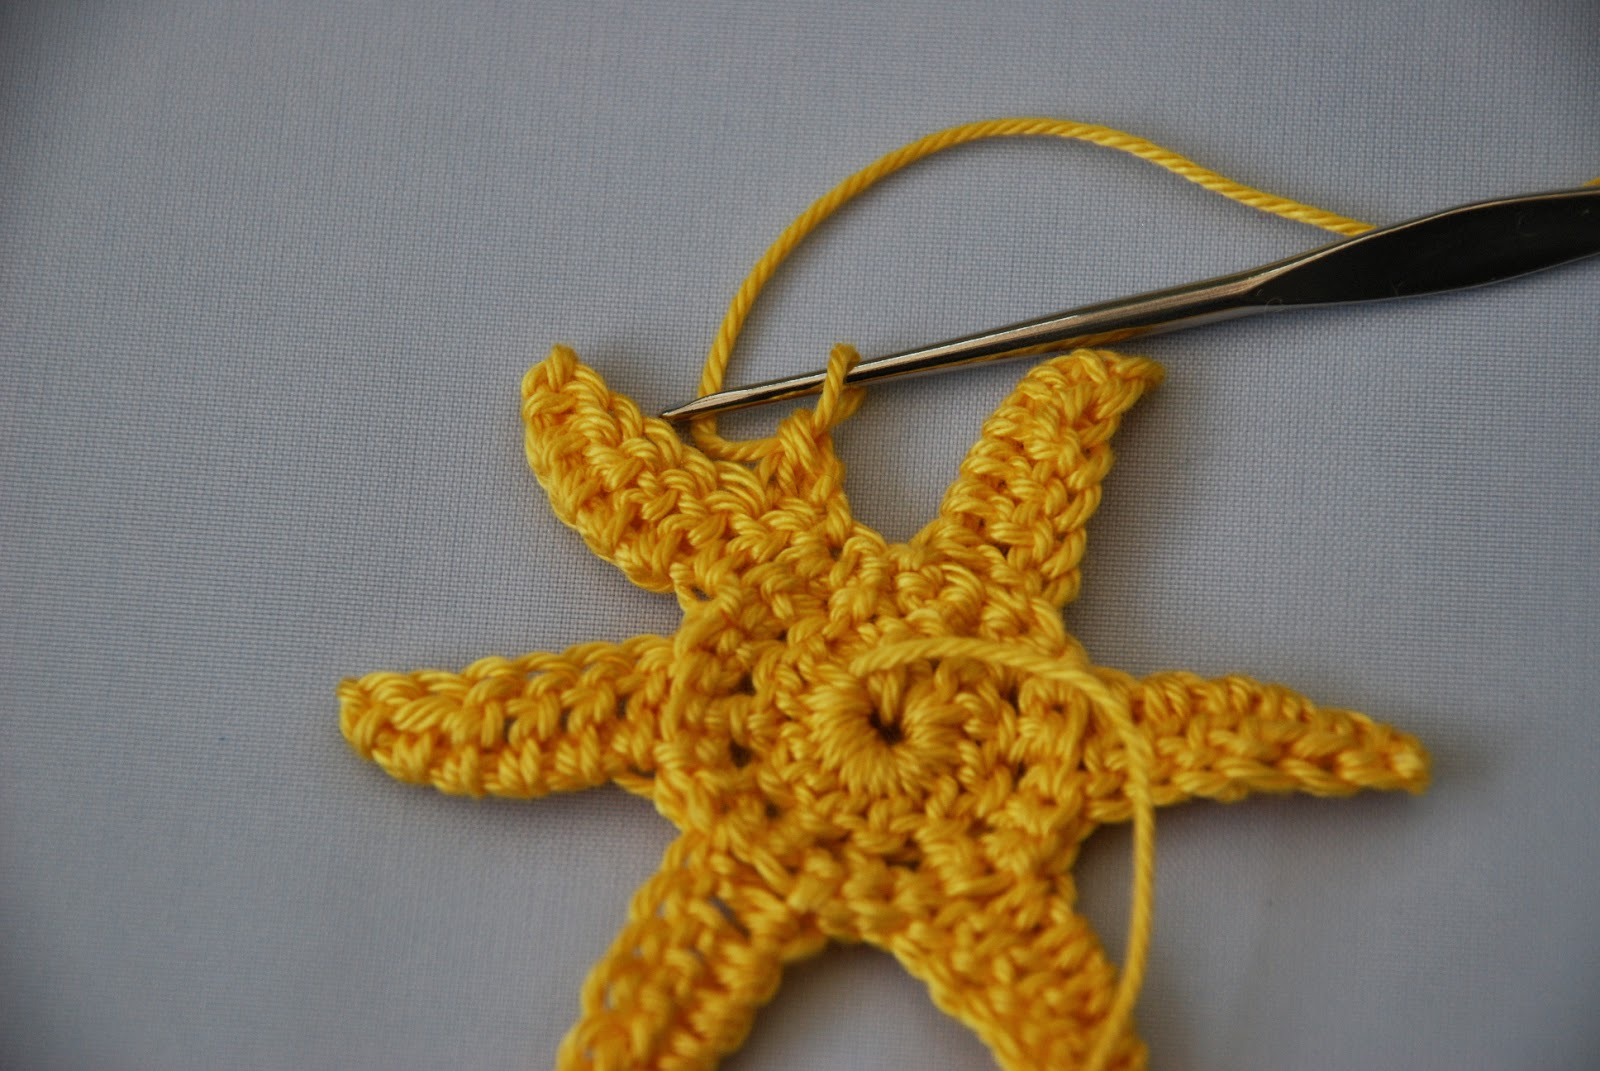 Crochet Daffodil pattern and tutorial: image of wrong side of work